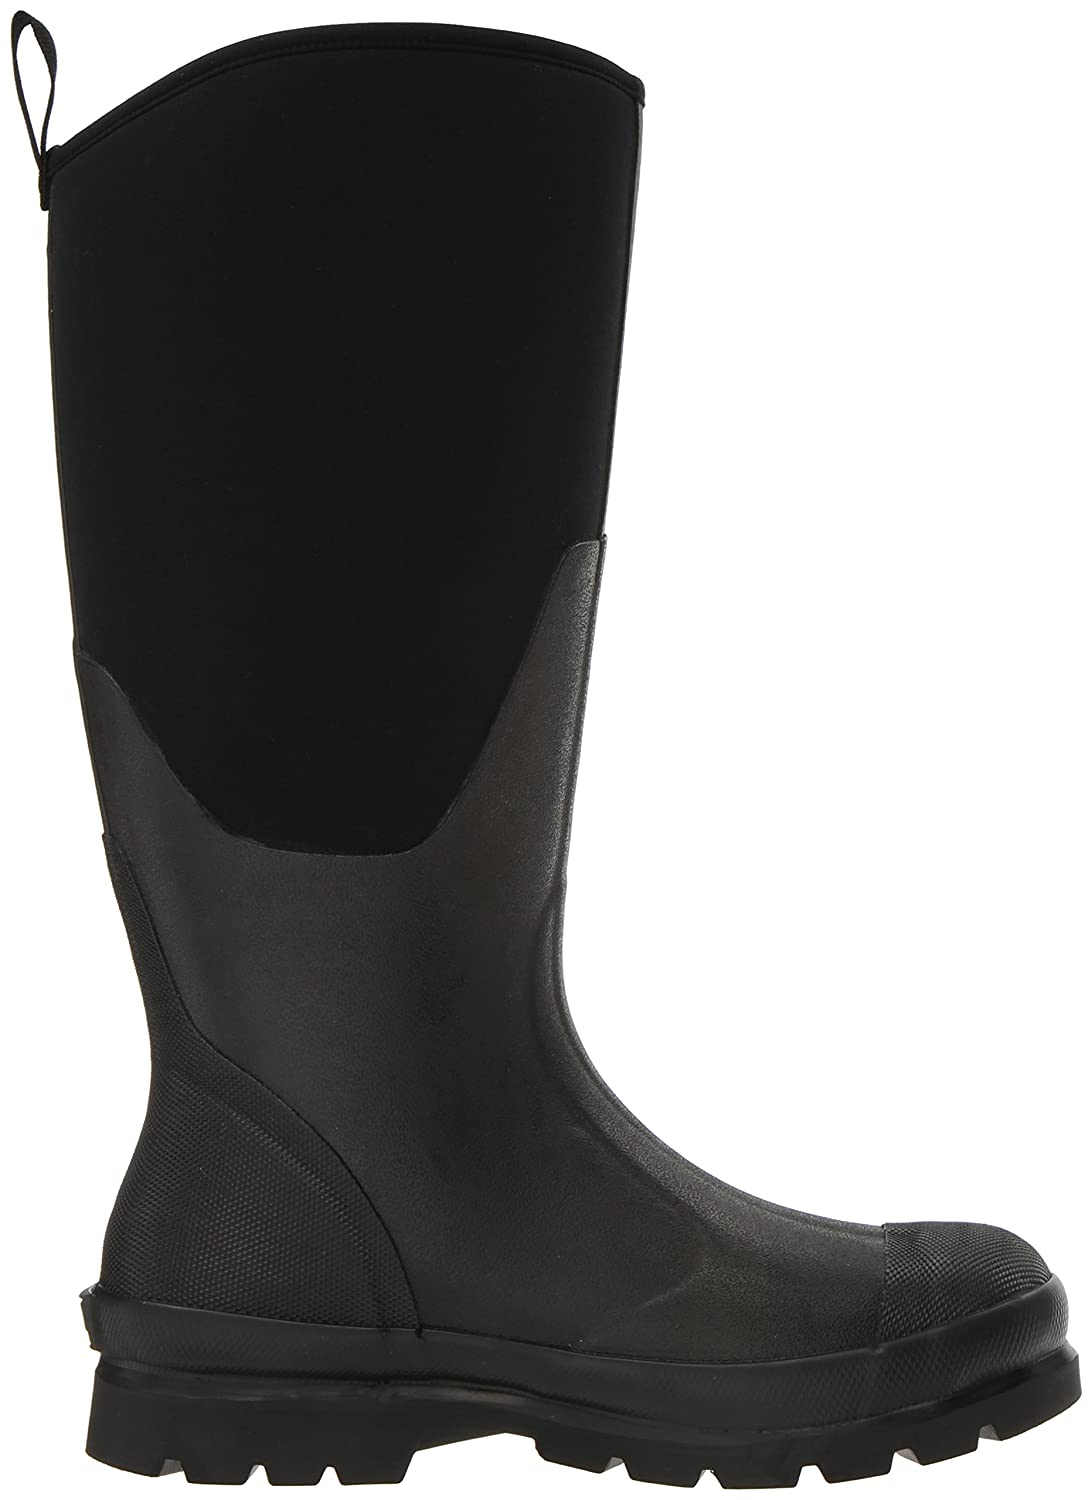 Muck Boot Women's Chore Tall Snow Boot B06VWWWZM8 9 B(M) US|Black